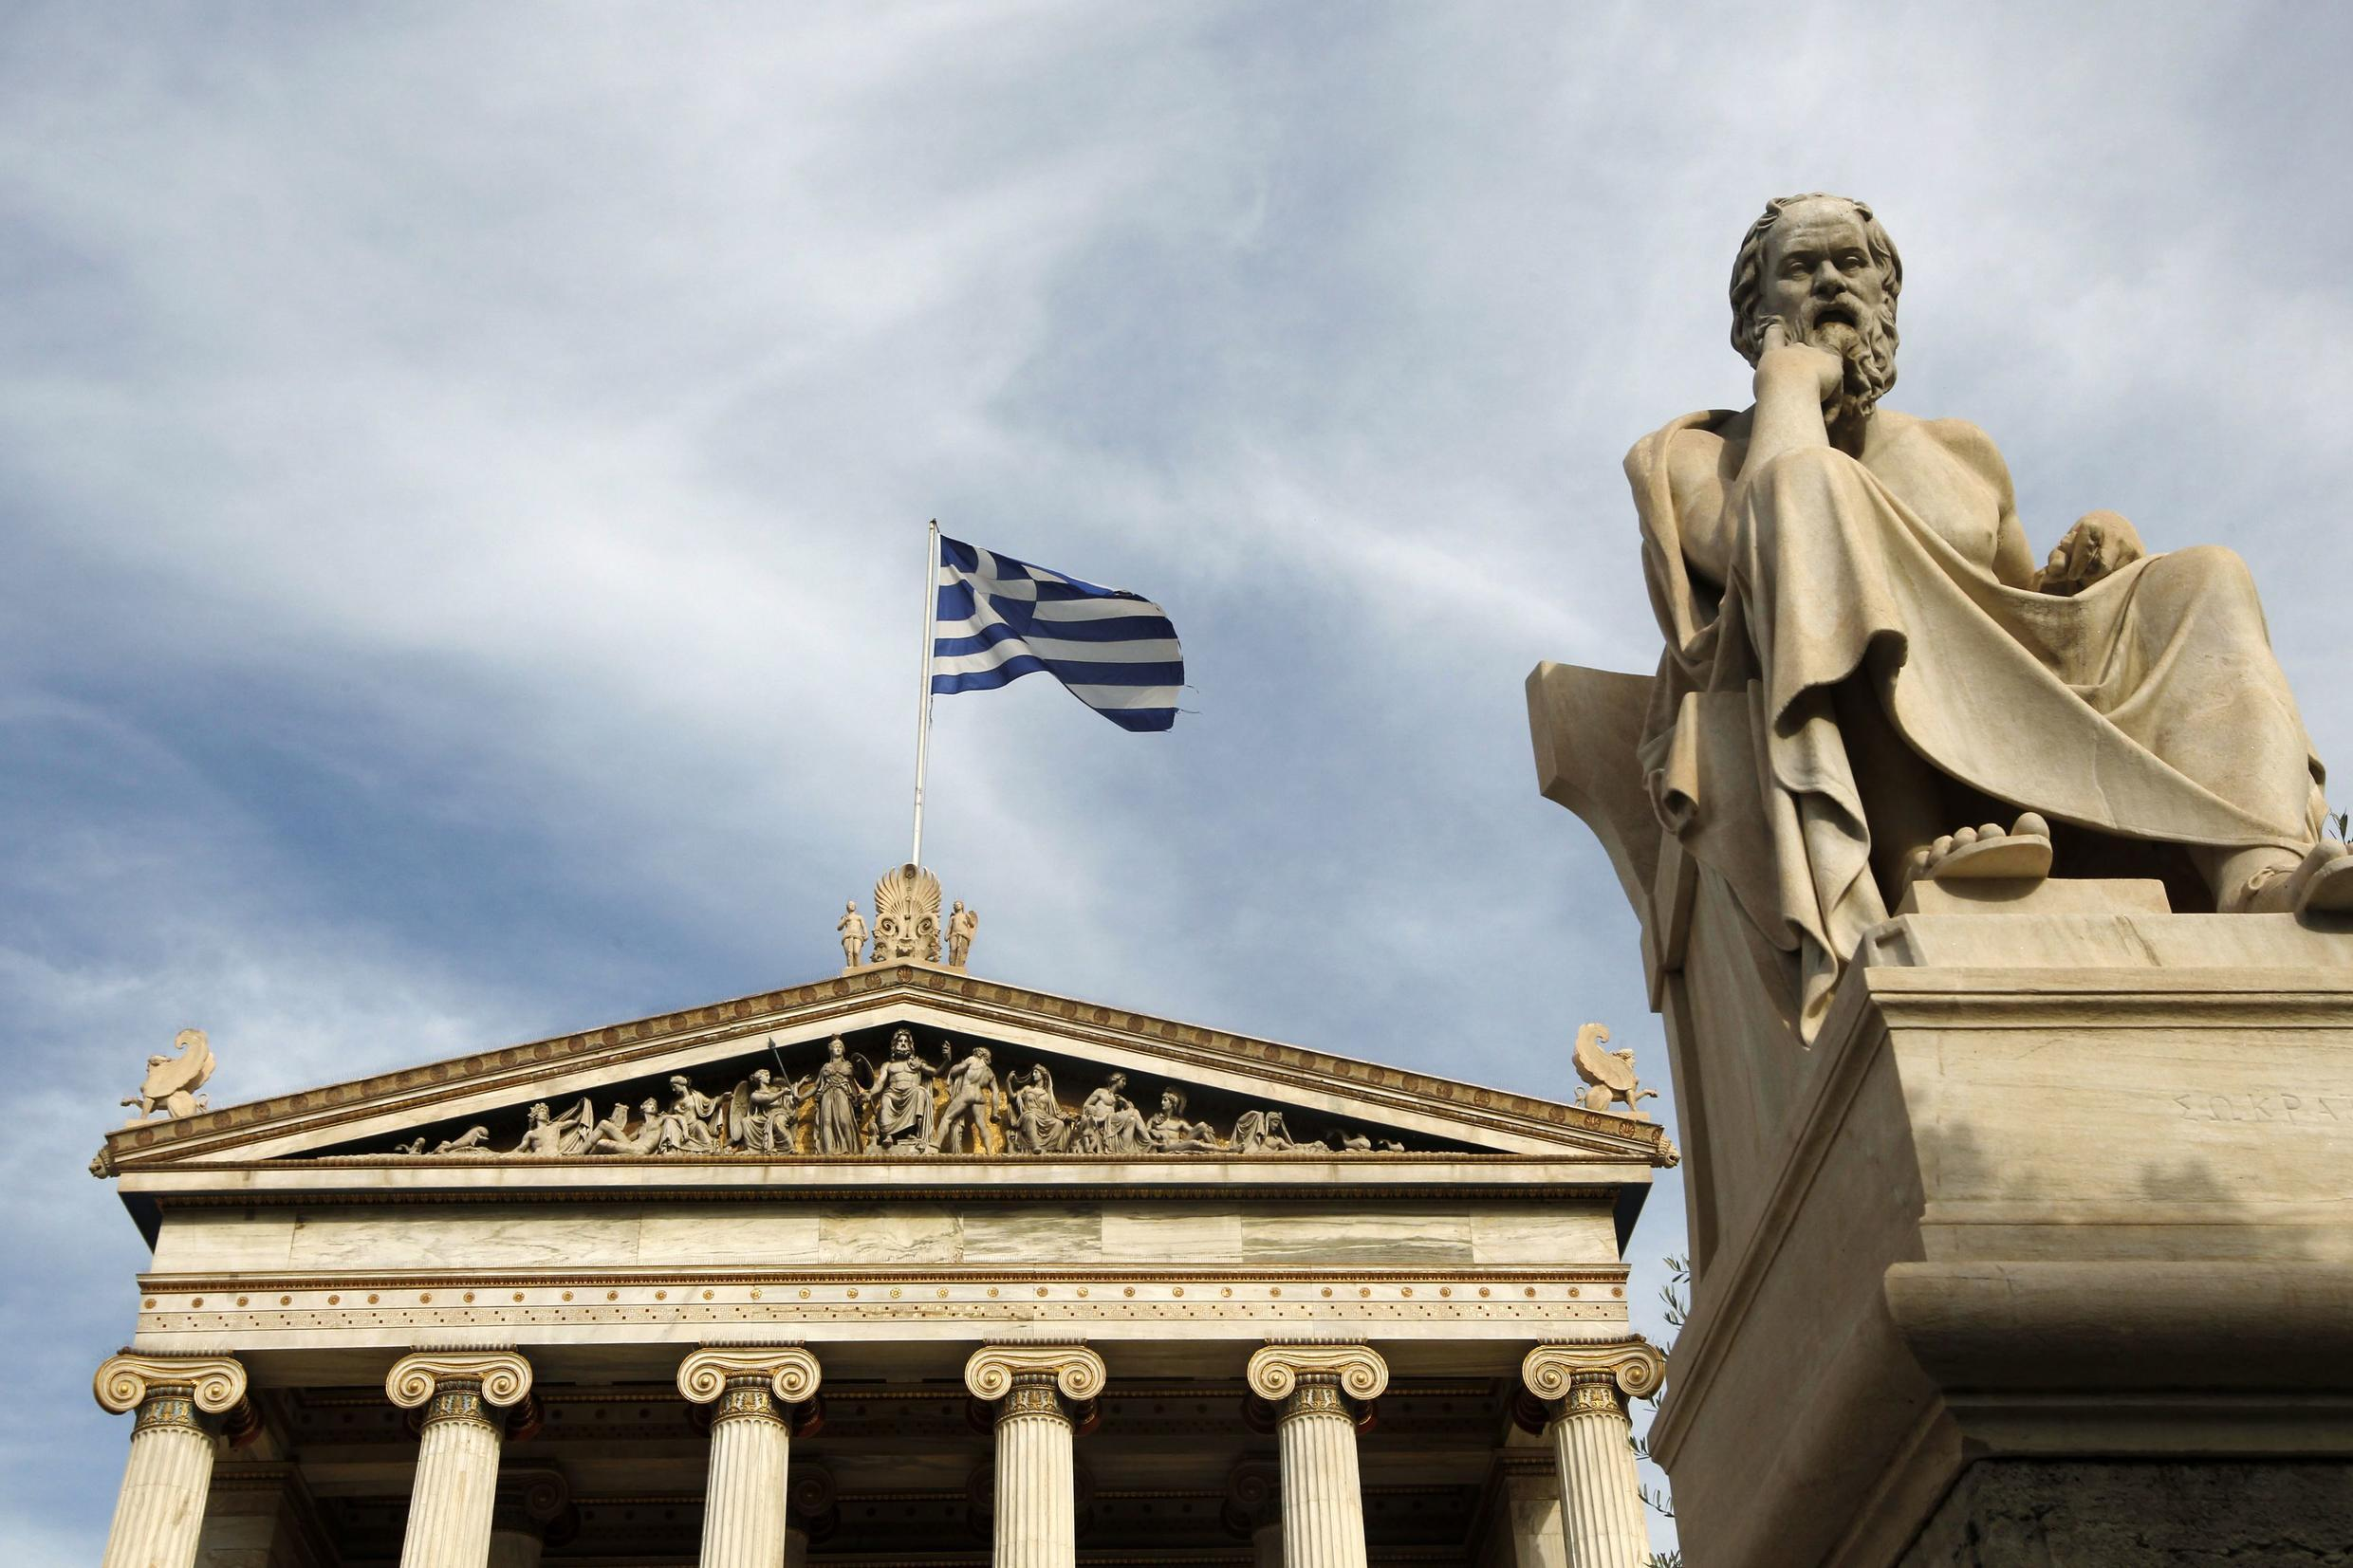 A statue of Greek philosopher Socrates outside the Athens Academy.